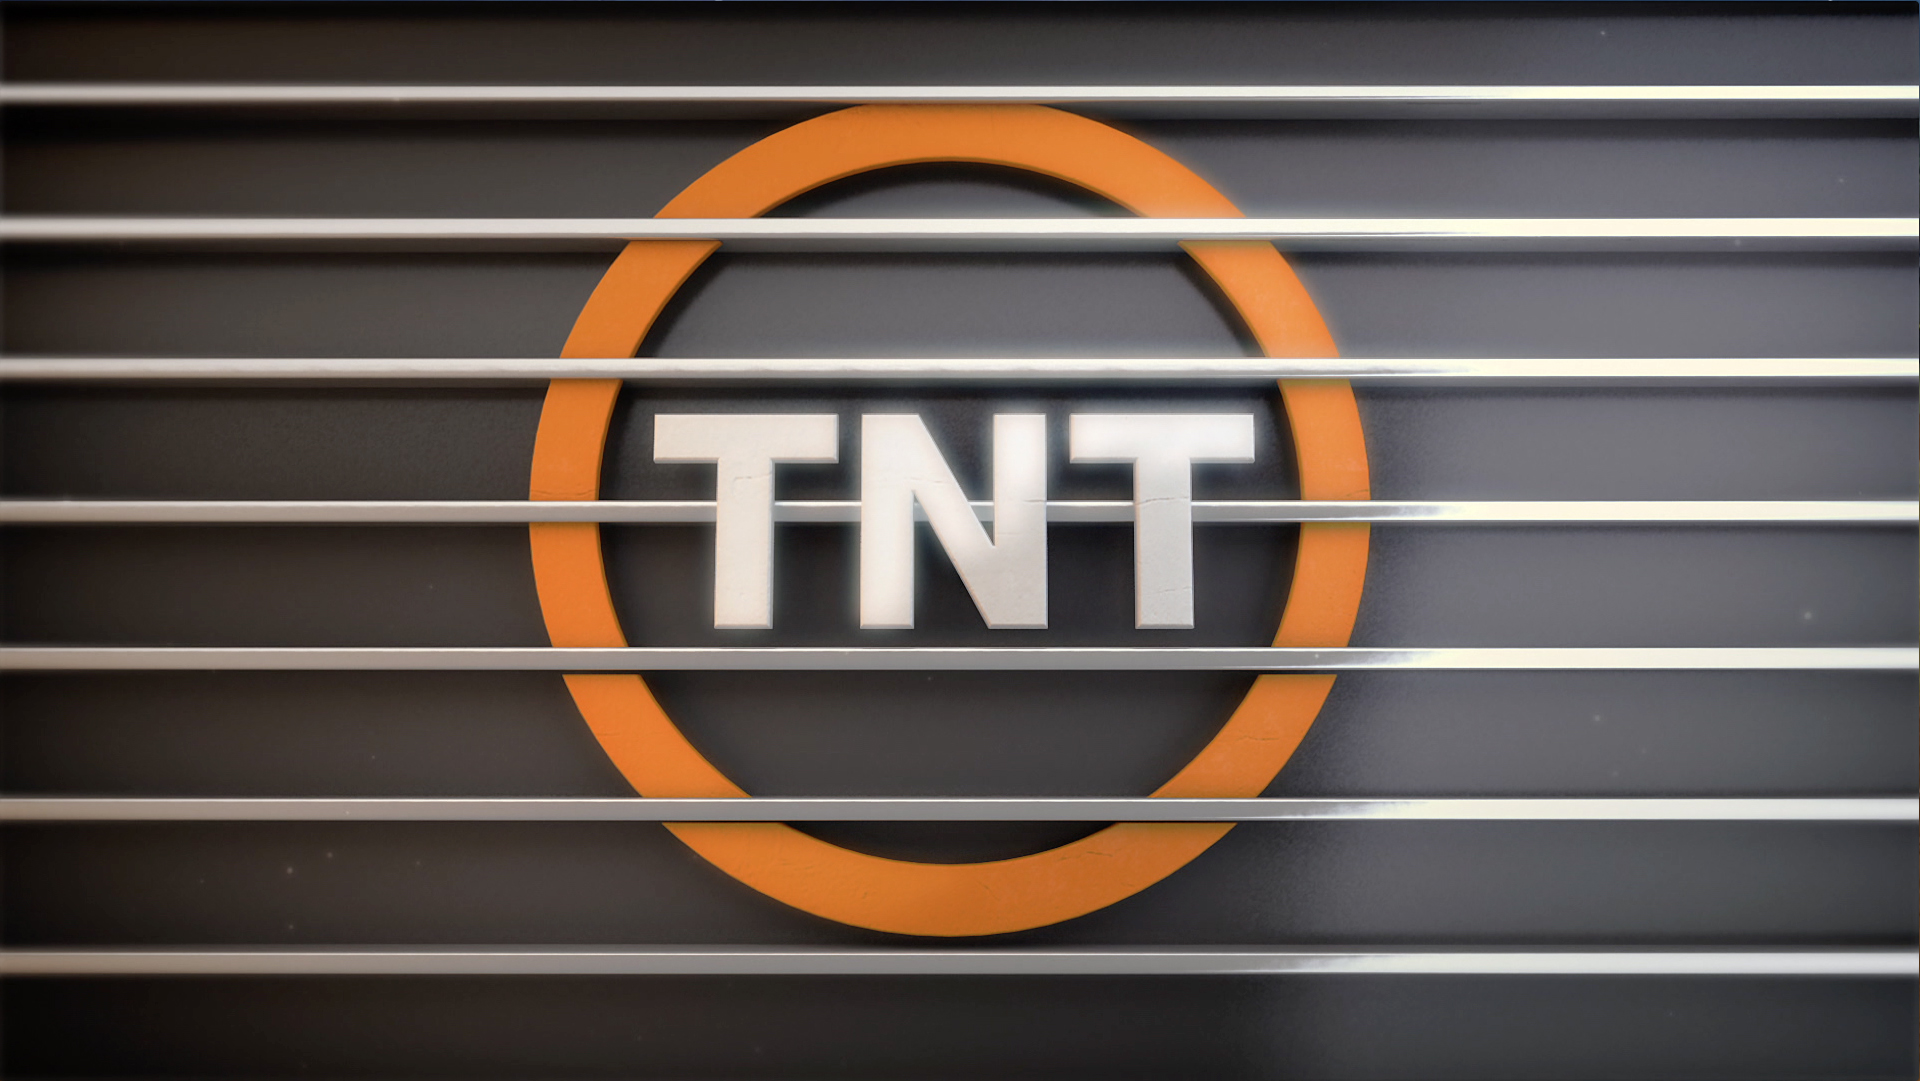 TNT_MOVIE_CLUB_LOGO.jpg